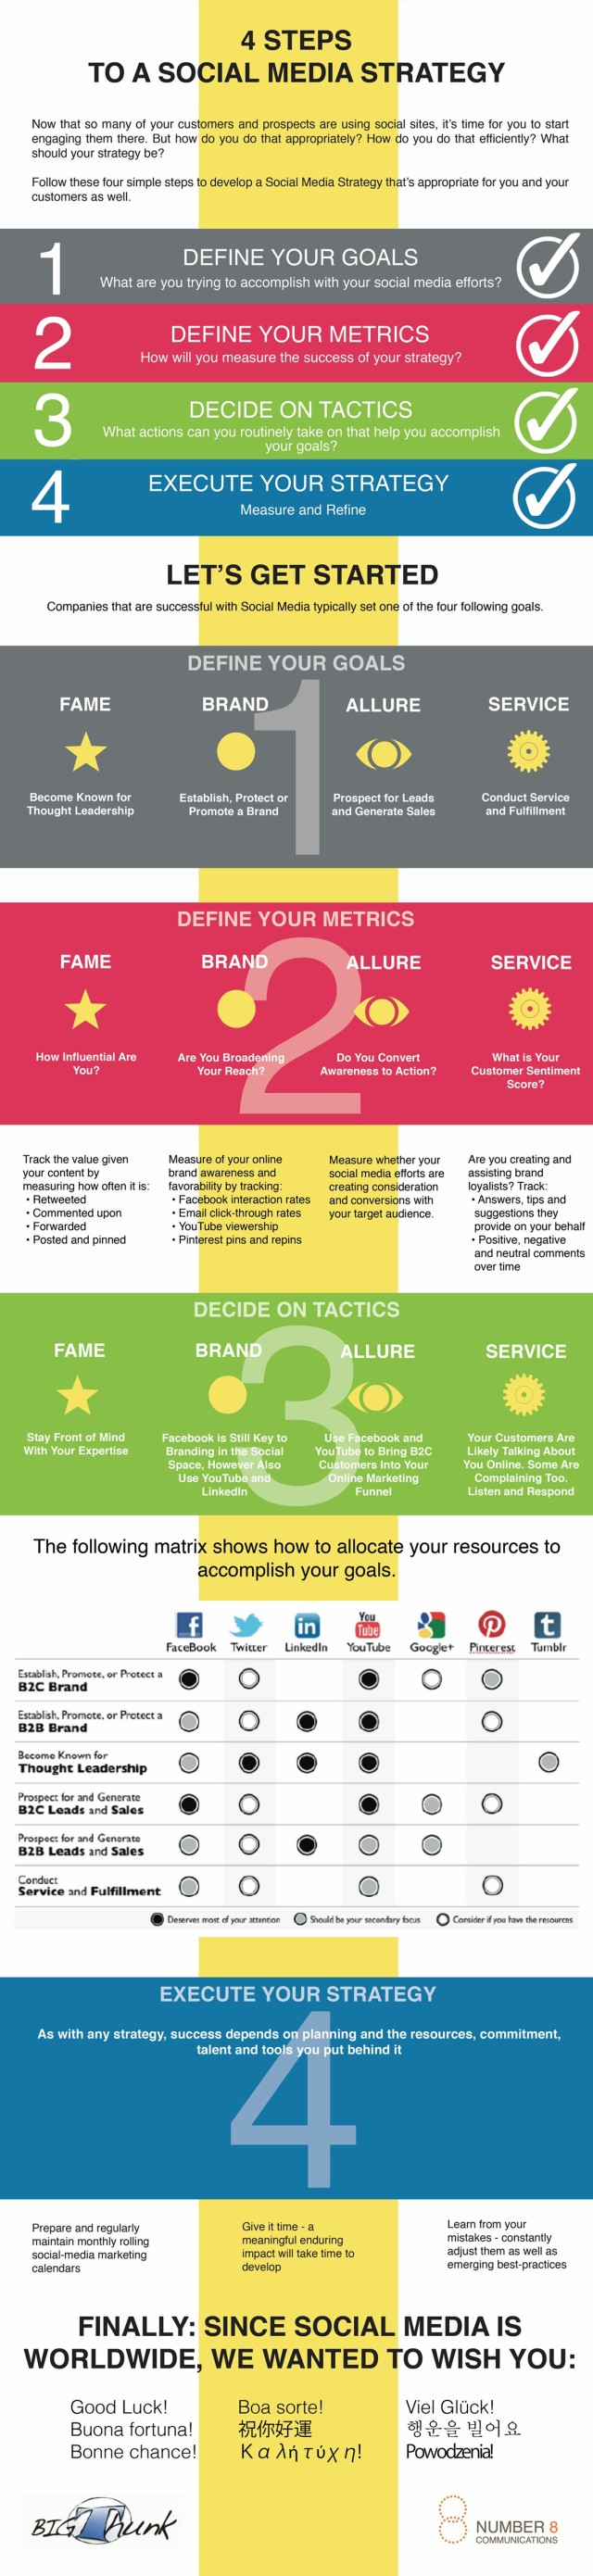 Your Social Media Strategy in Just 4 Steps